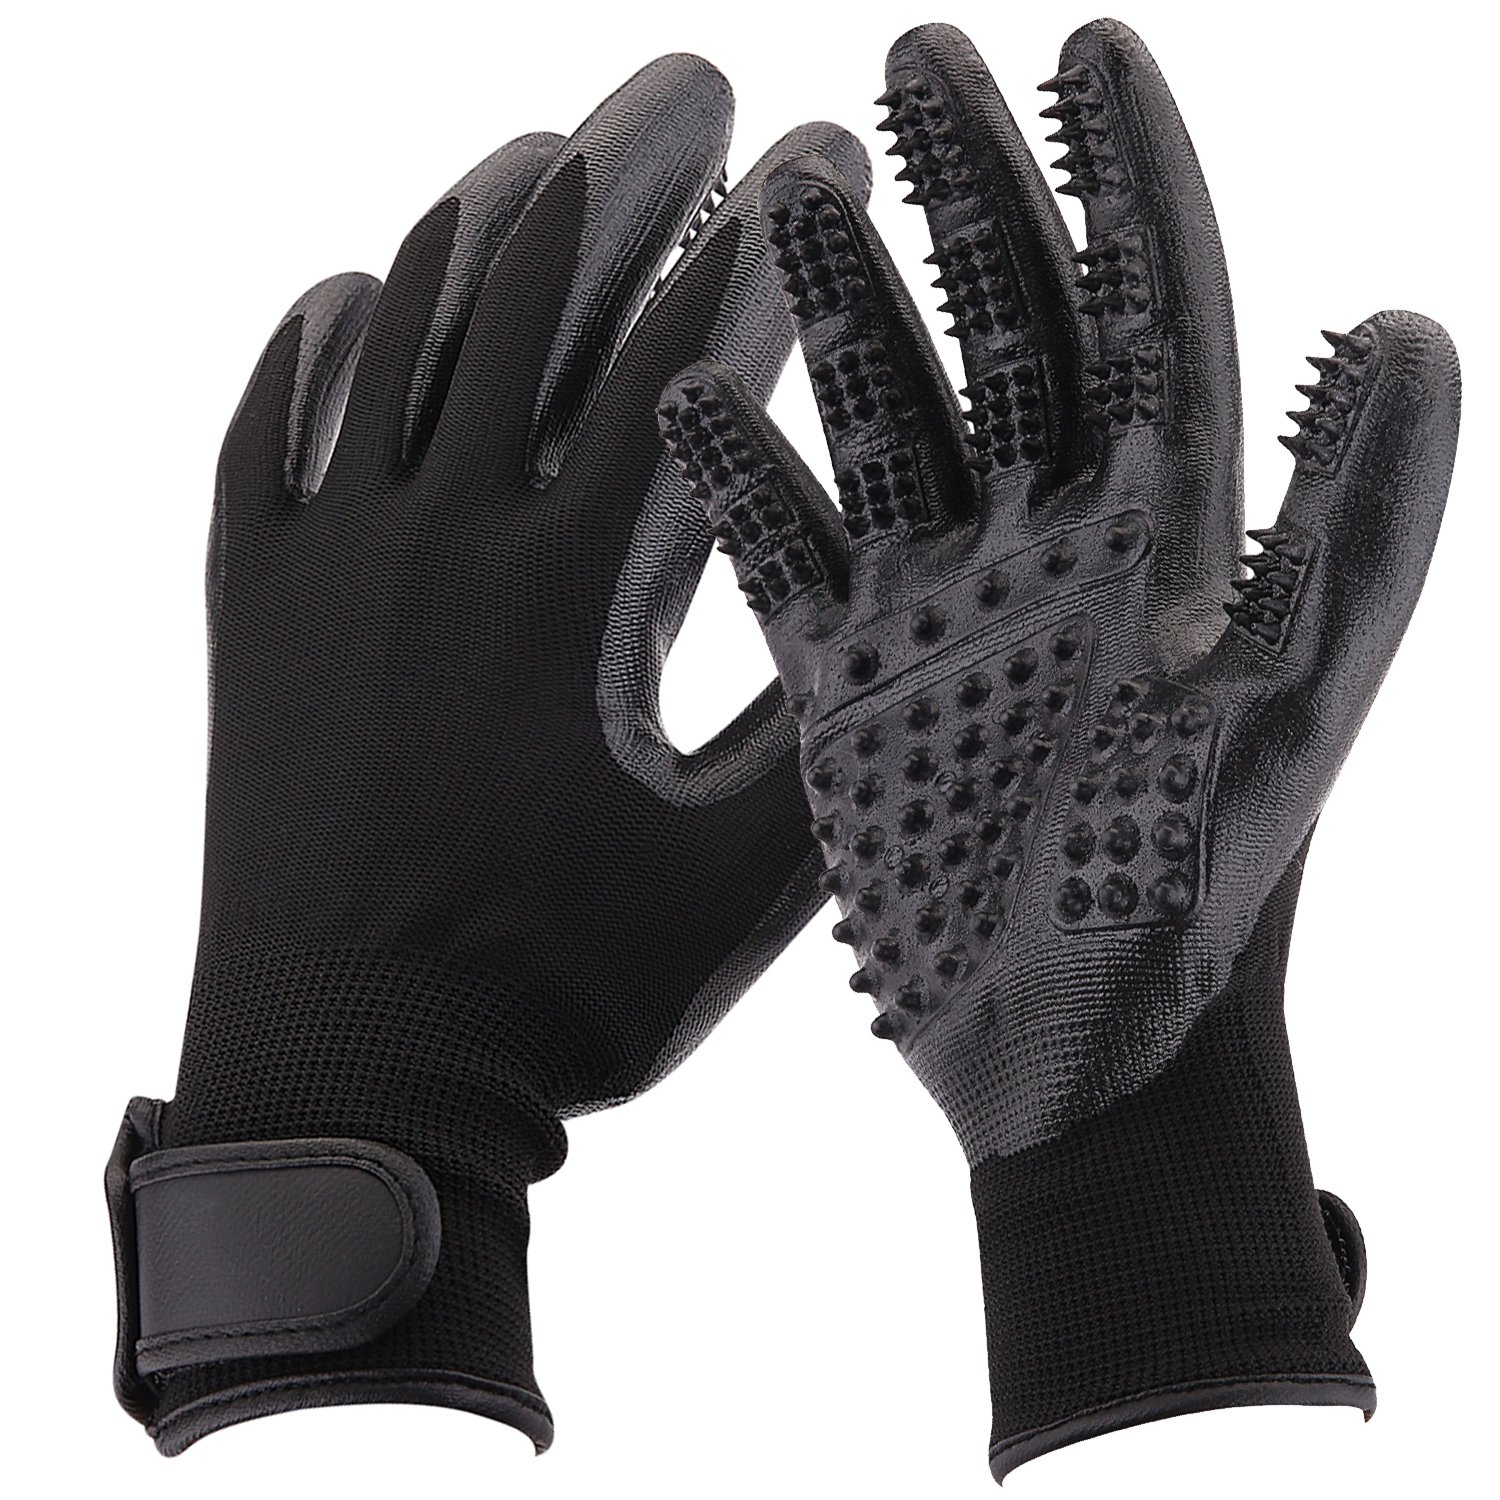 Pet Grooming Gloves, Shedding Brush, Combing and Massage, For Dogs, Horses, Cats, Rabbits, Cows, Other Pets and Livestock, Long & Short Fur, One Pair